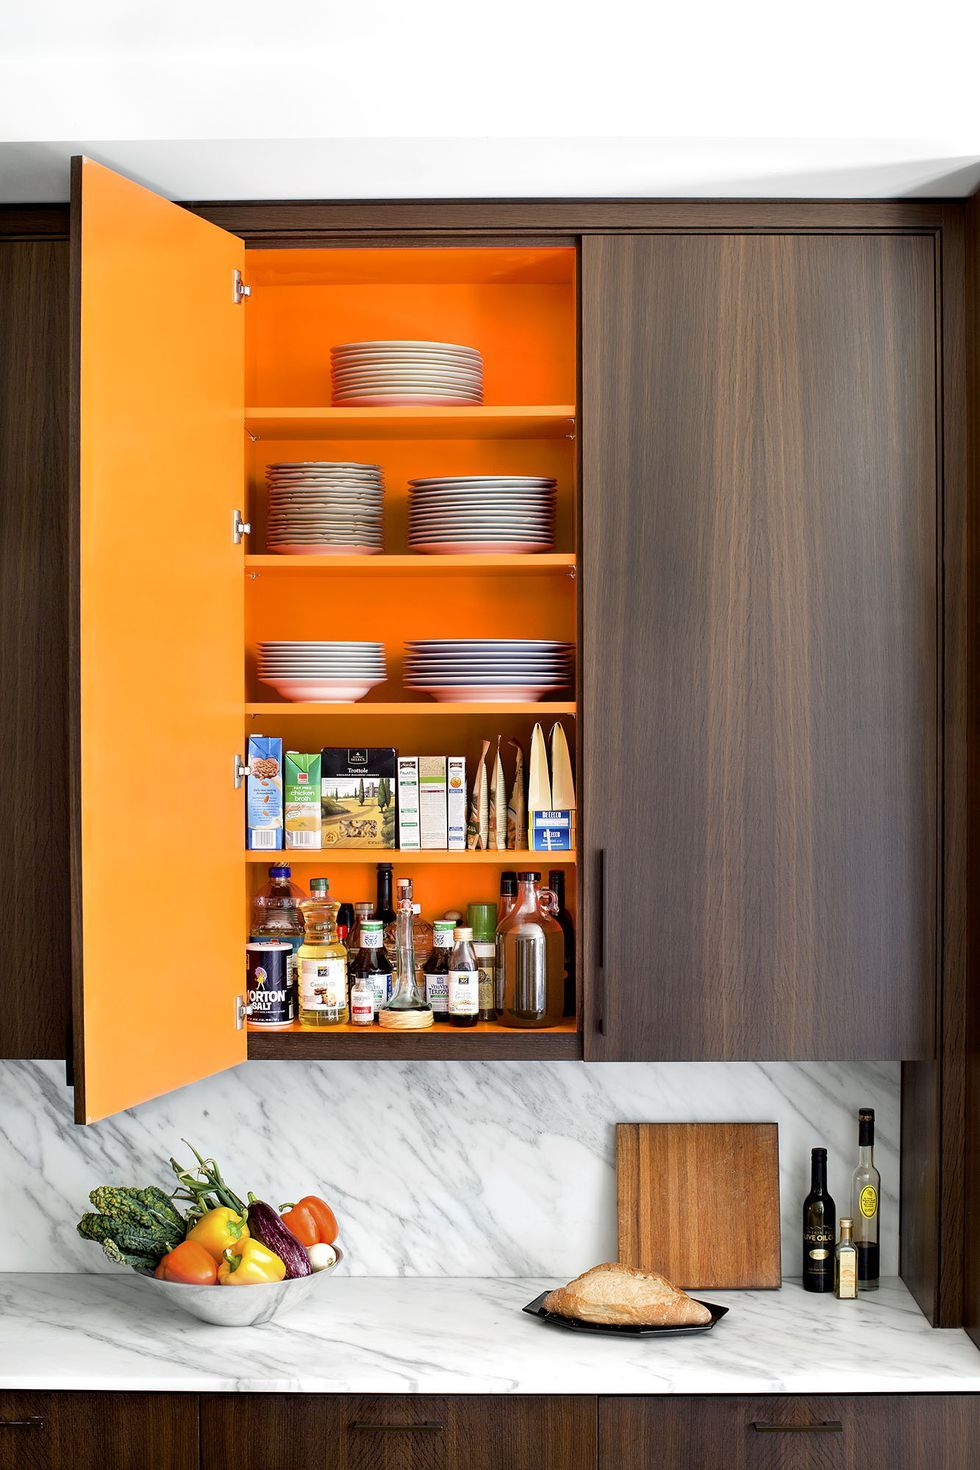 7 Seriously Gorgeous Paint Colors Nobody Thinks Of Using Kitchen Cabinets Orange Paint Inside Cabinets Inside Kitchen Cabinets